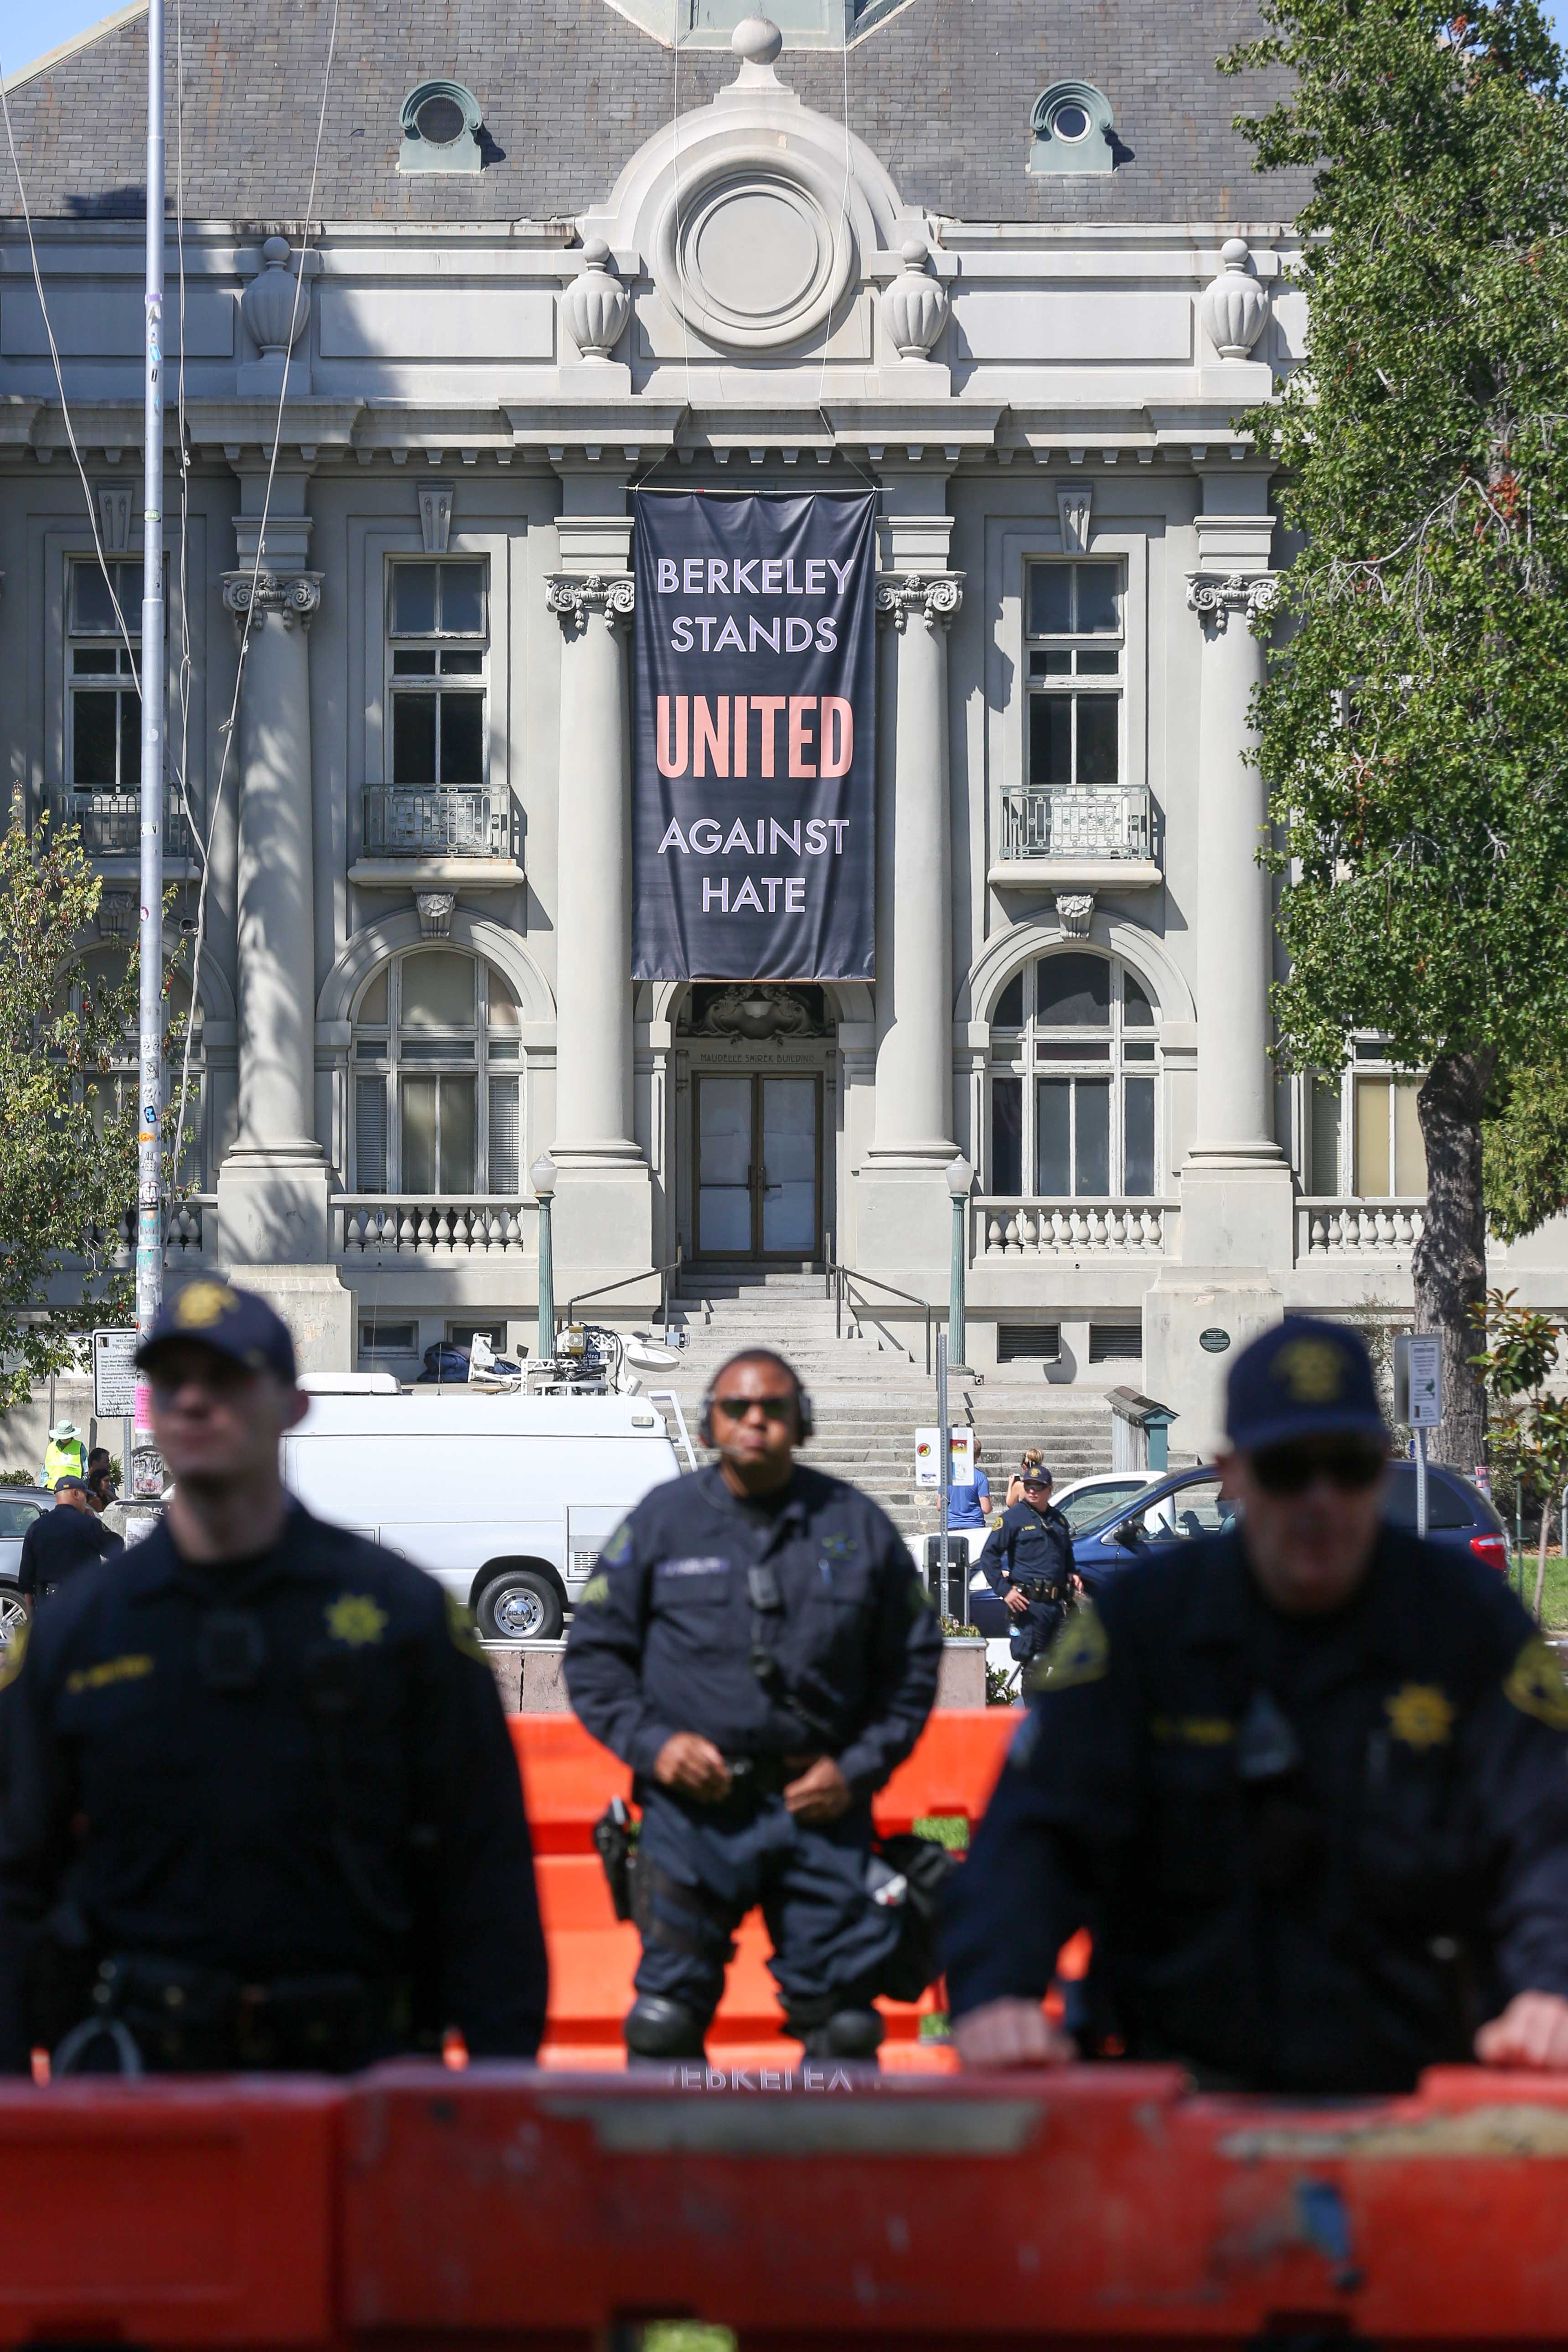 Riot police blockade the park and streets during a No-To-Marxism rally on August 27, 2017 at Martin Luther King Jr. Park in Berkeley, California. (AMY OSBORNE/AFP/Getty Images)